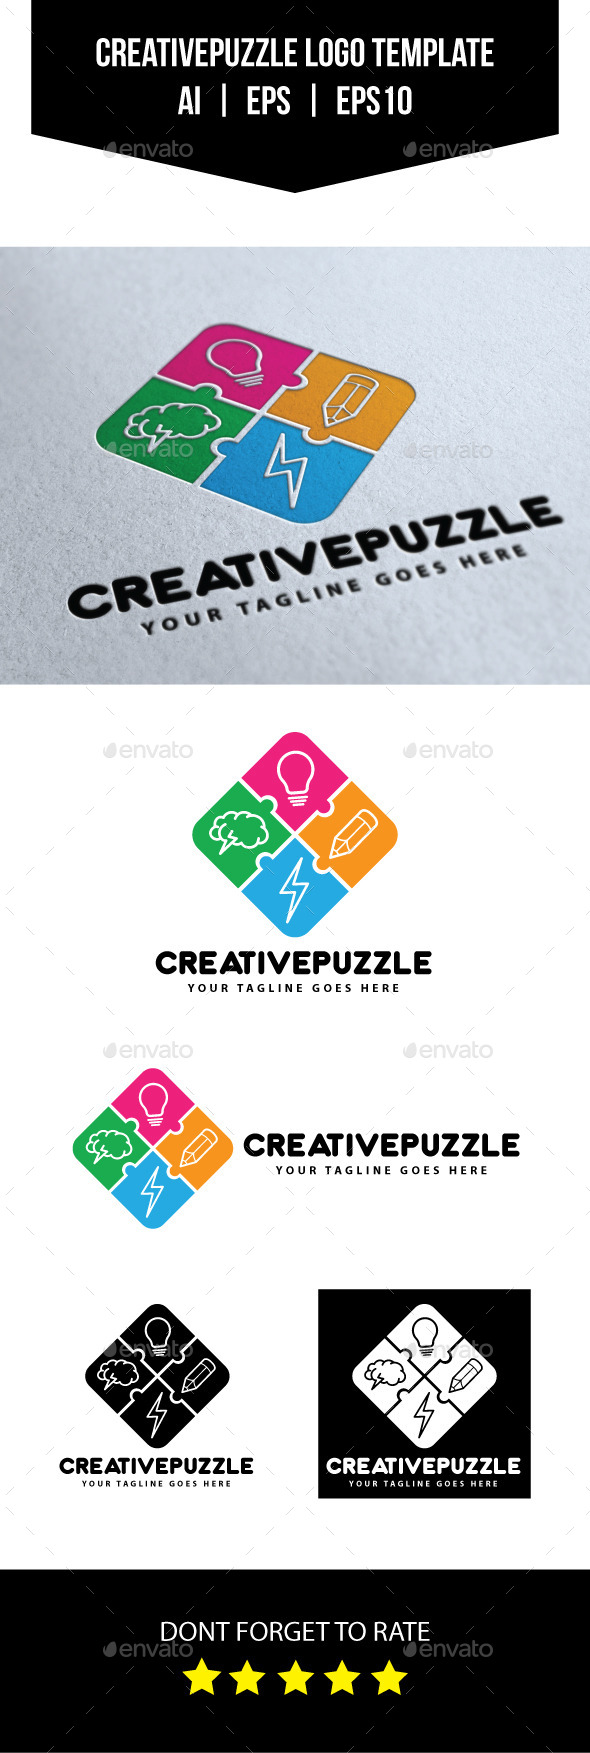 GraphicRiver Creative Puzzle Logo Template 10654846